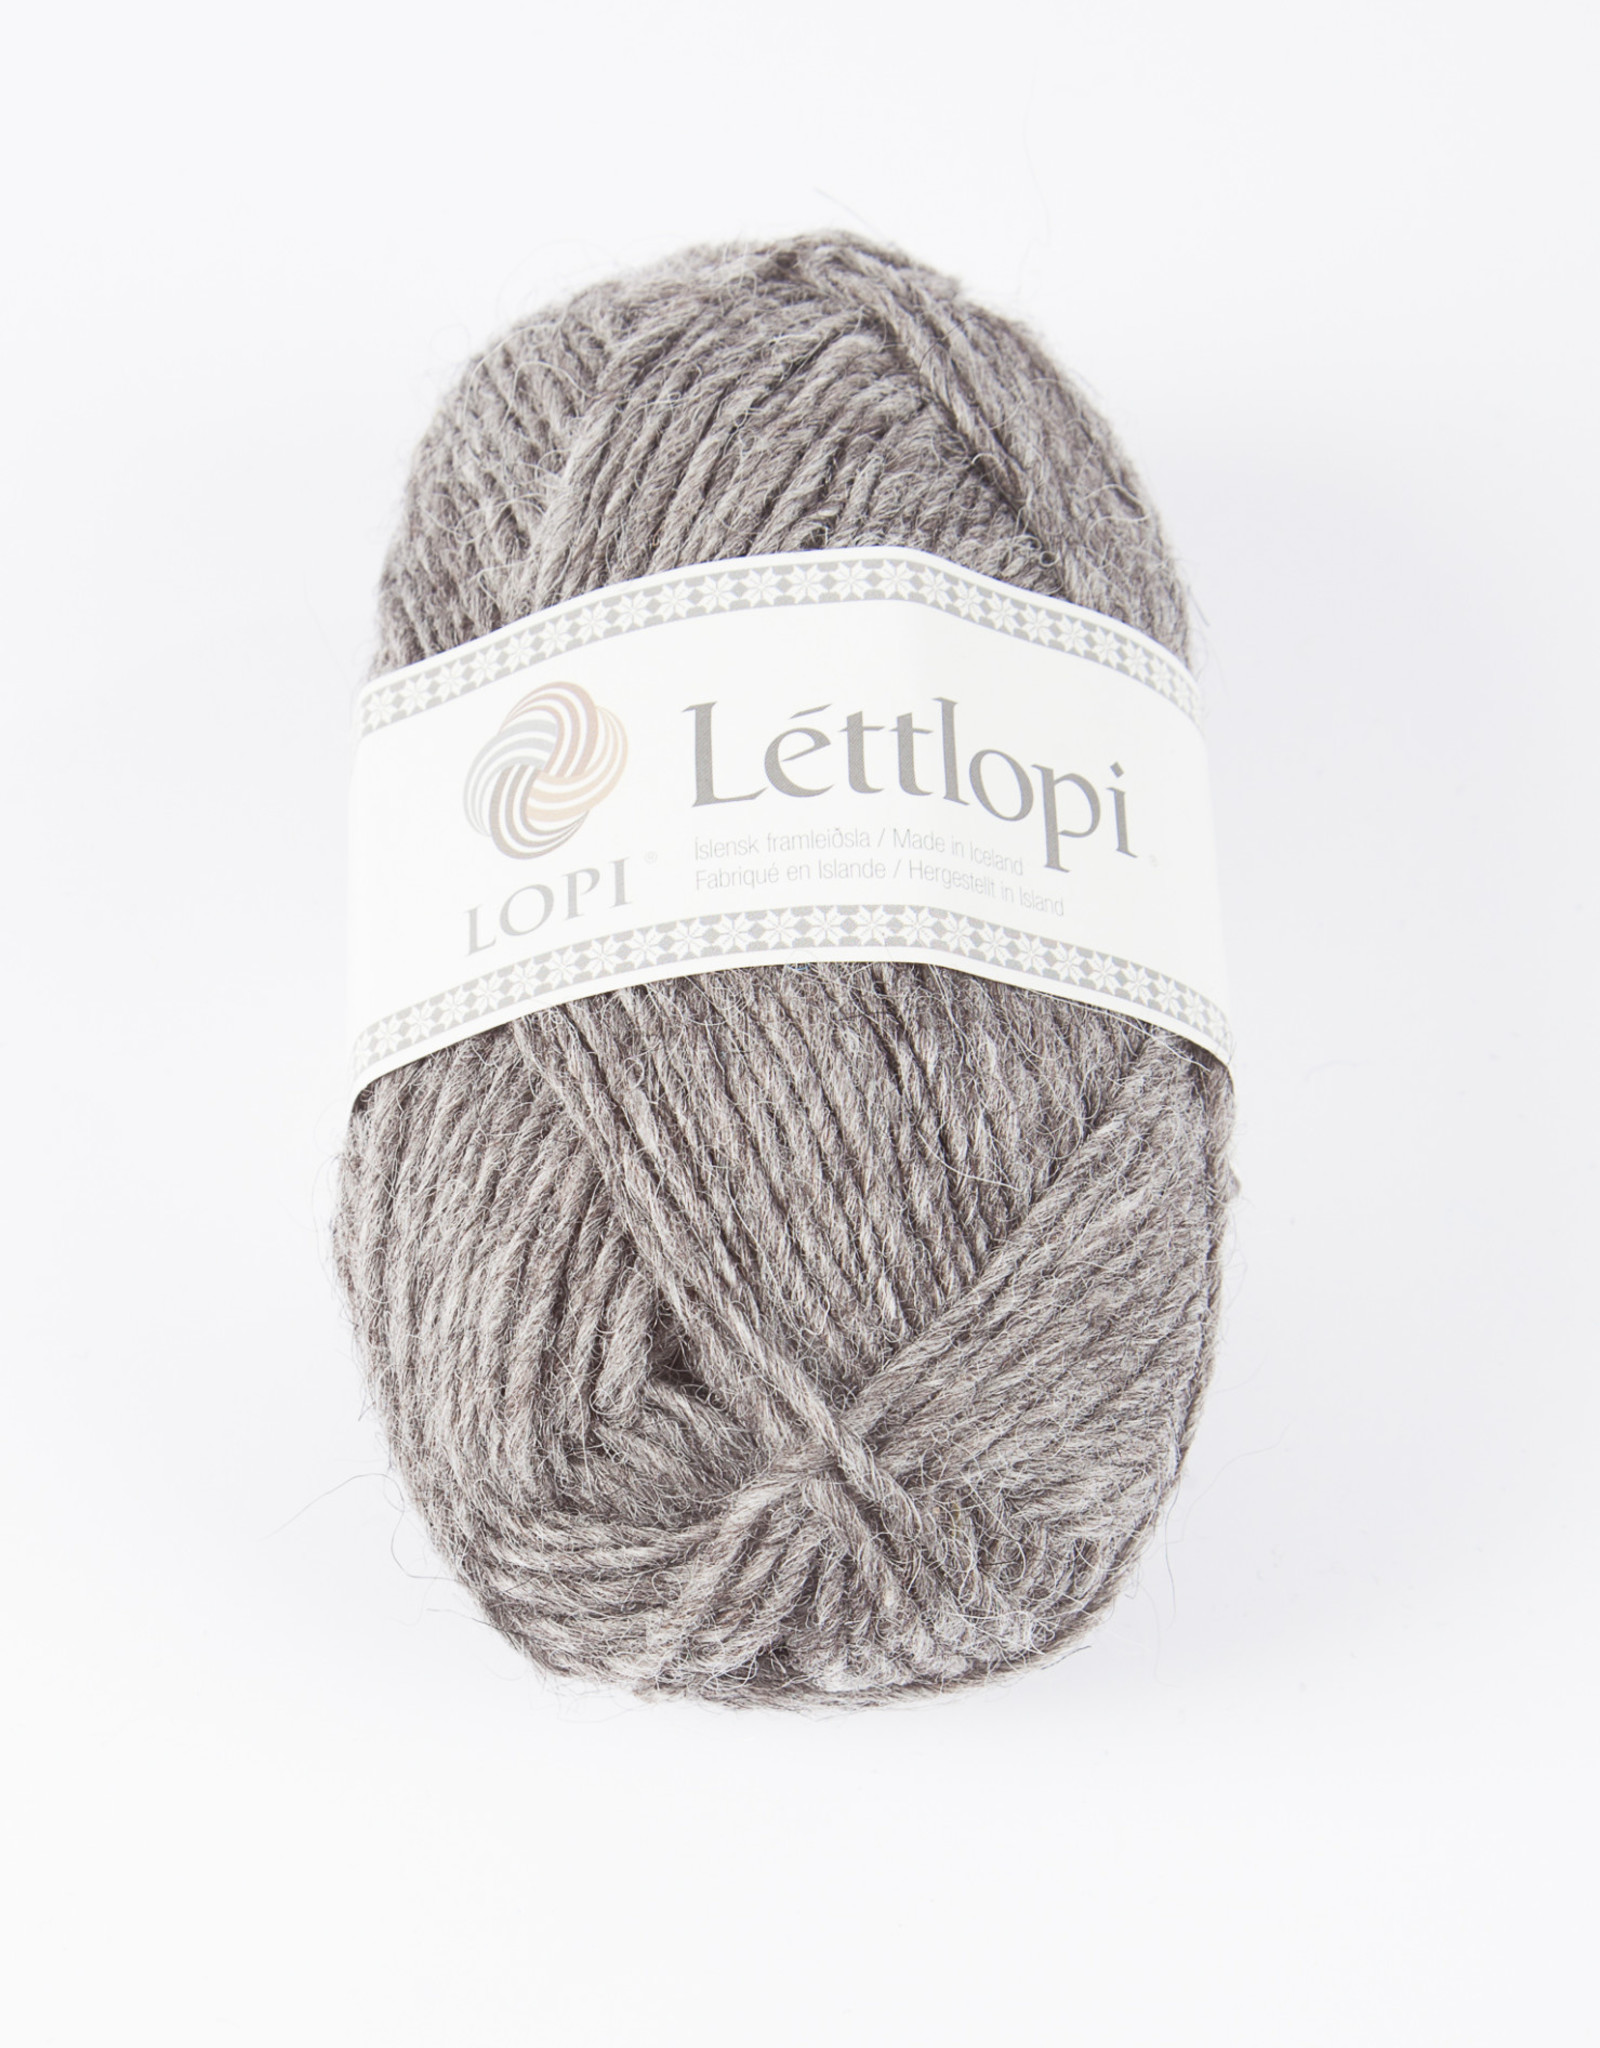 Lettlopi 50g 57 gray heather